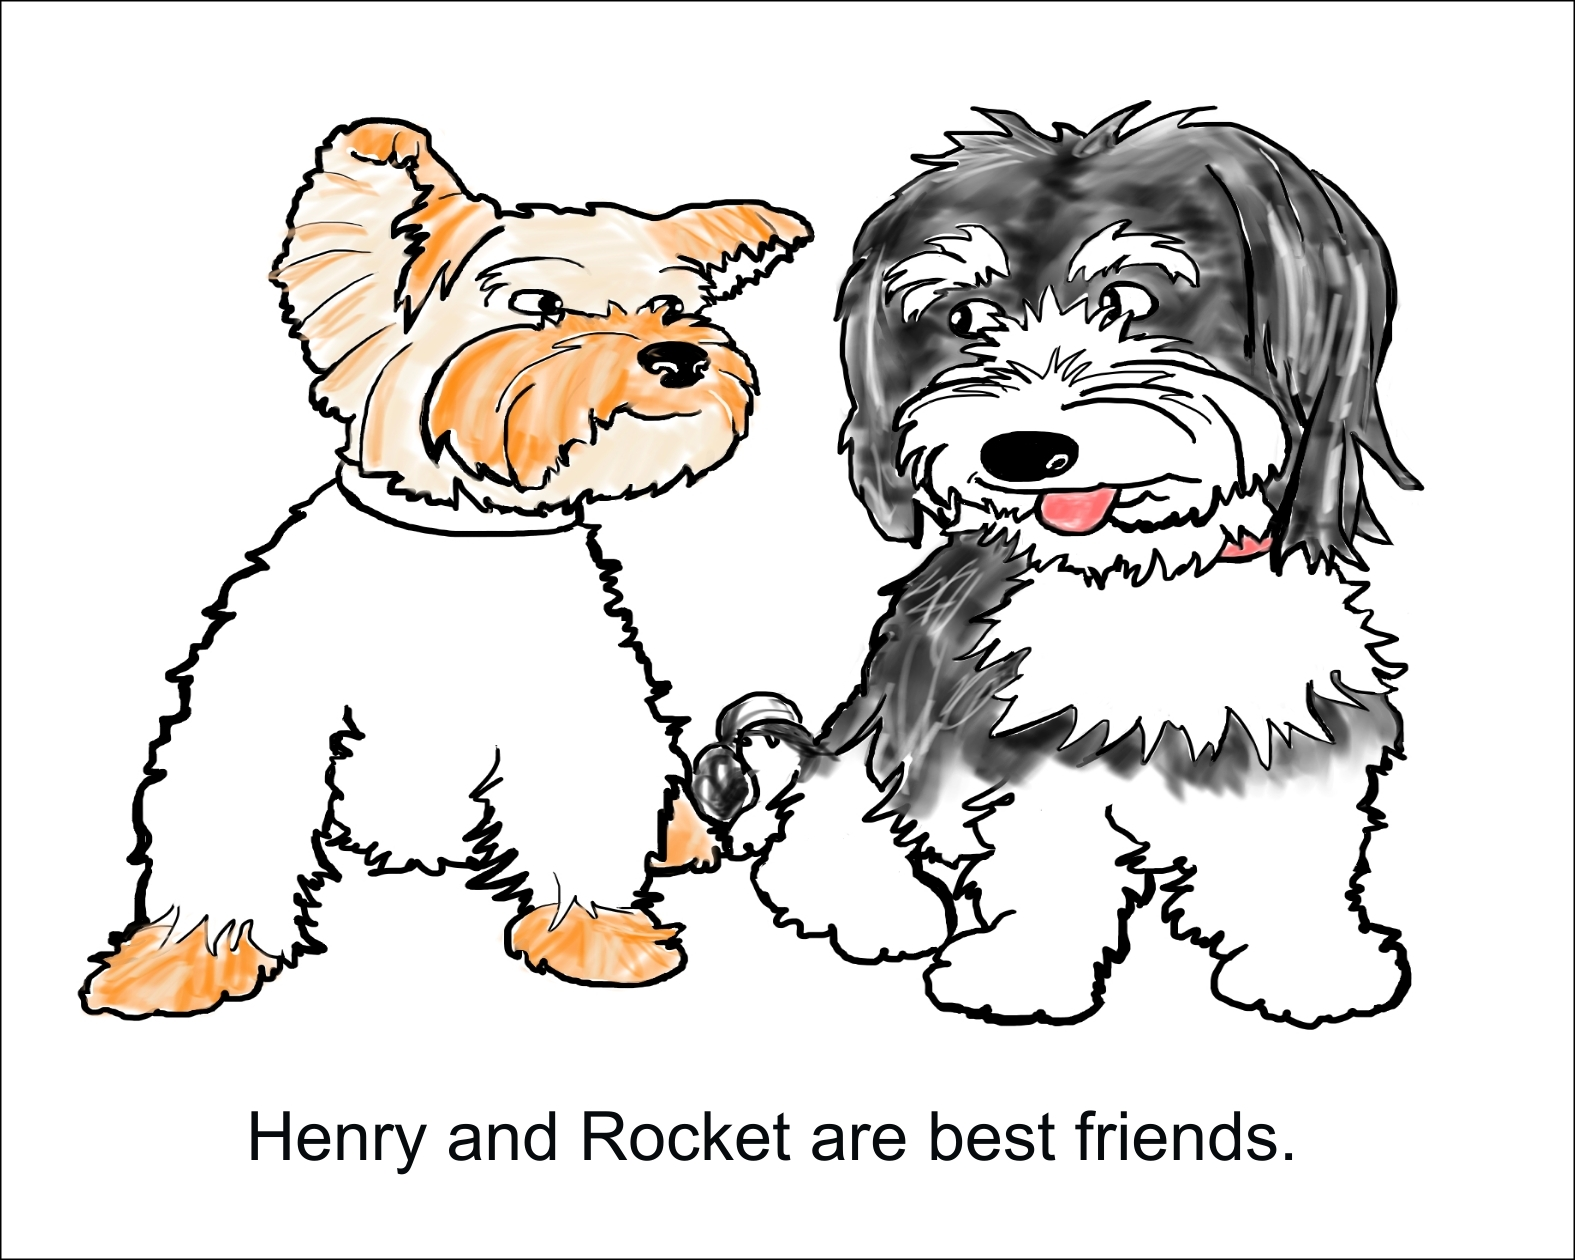 Henry and Rocket Pg. 1